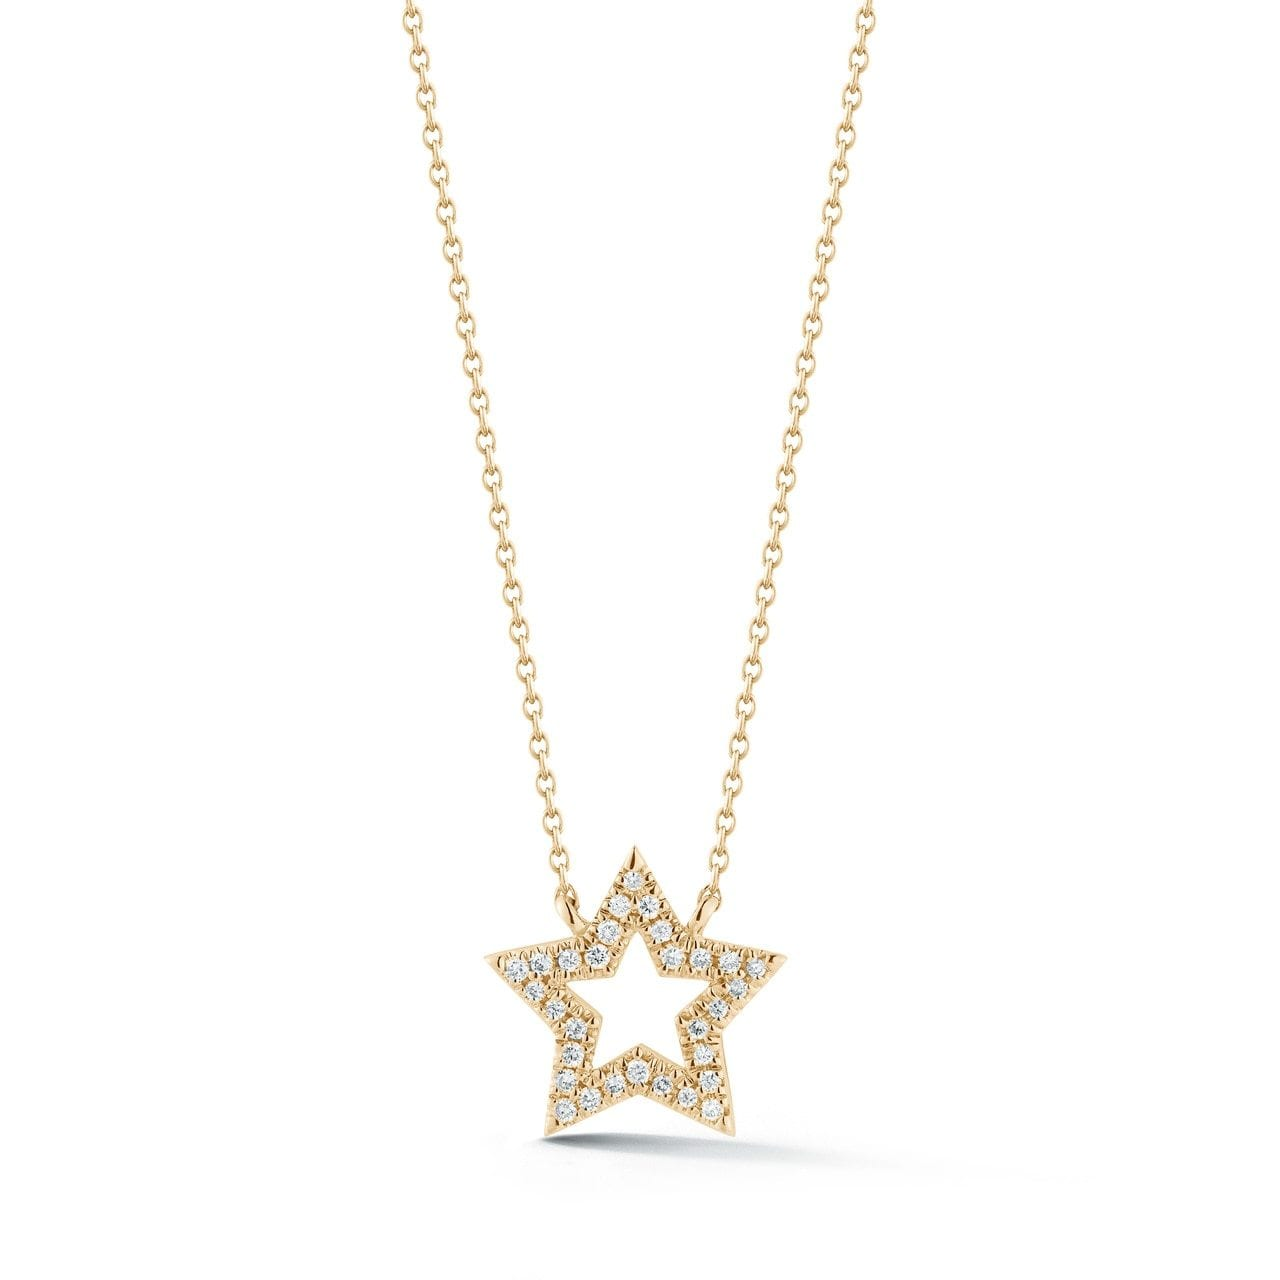 Vincents Fine Jewelry | Dana Rebecca | Julianne Himiko Cutout Star Necklace